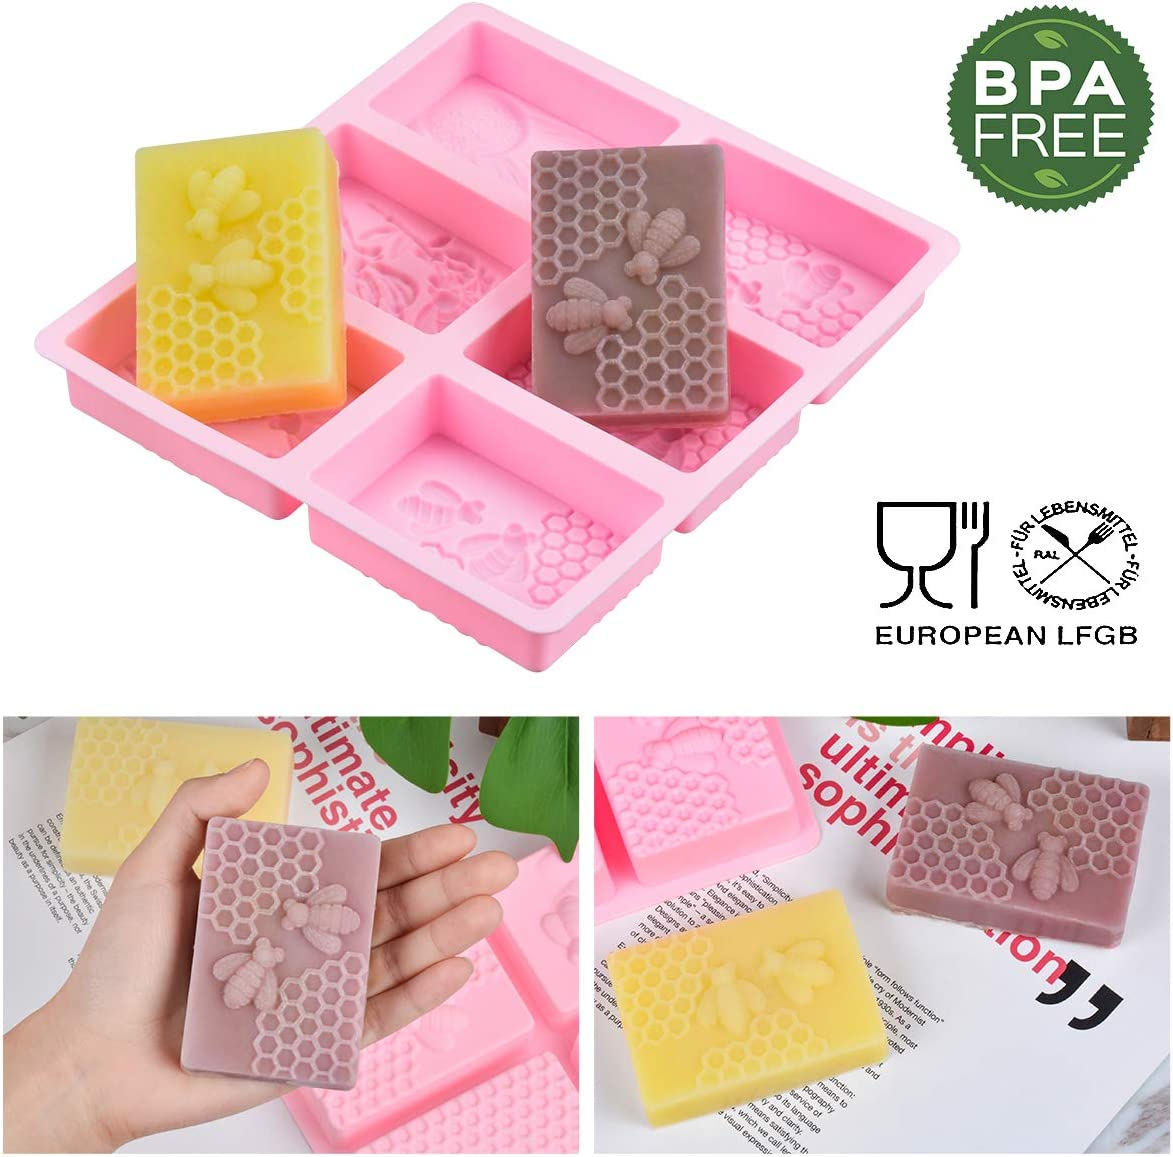 SJ 3D Bee Silicone Molds Rectangle Cake Baking Mold Honeycomb Molds for Soaps Square, Pink Resin Mold Beehive Candle Mold for Homemade Craft